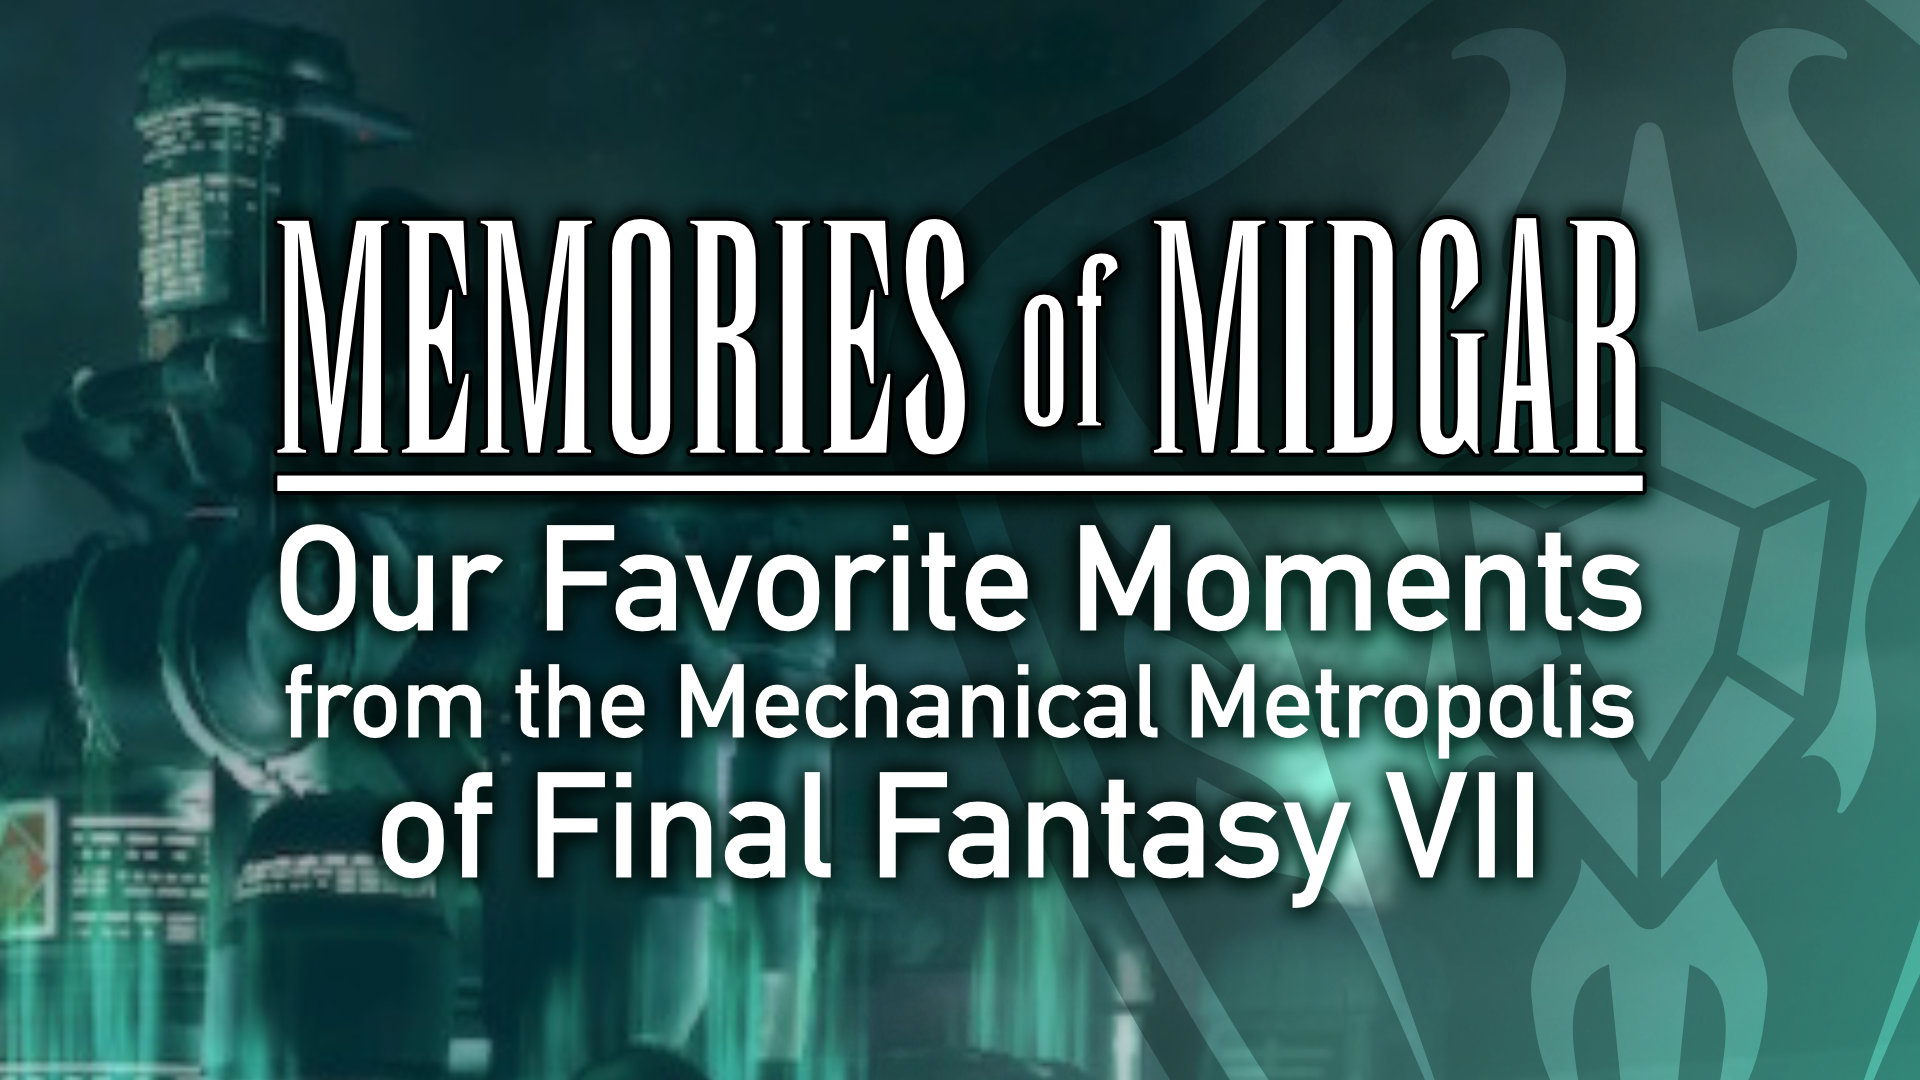 Memories of Midgar: Our Favorite Moments from the Mechanical Metropolis of Final Fantasy VII